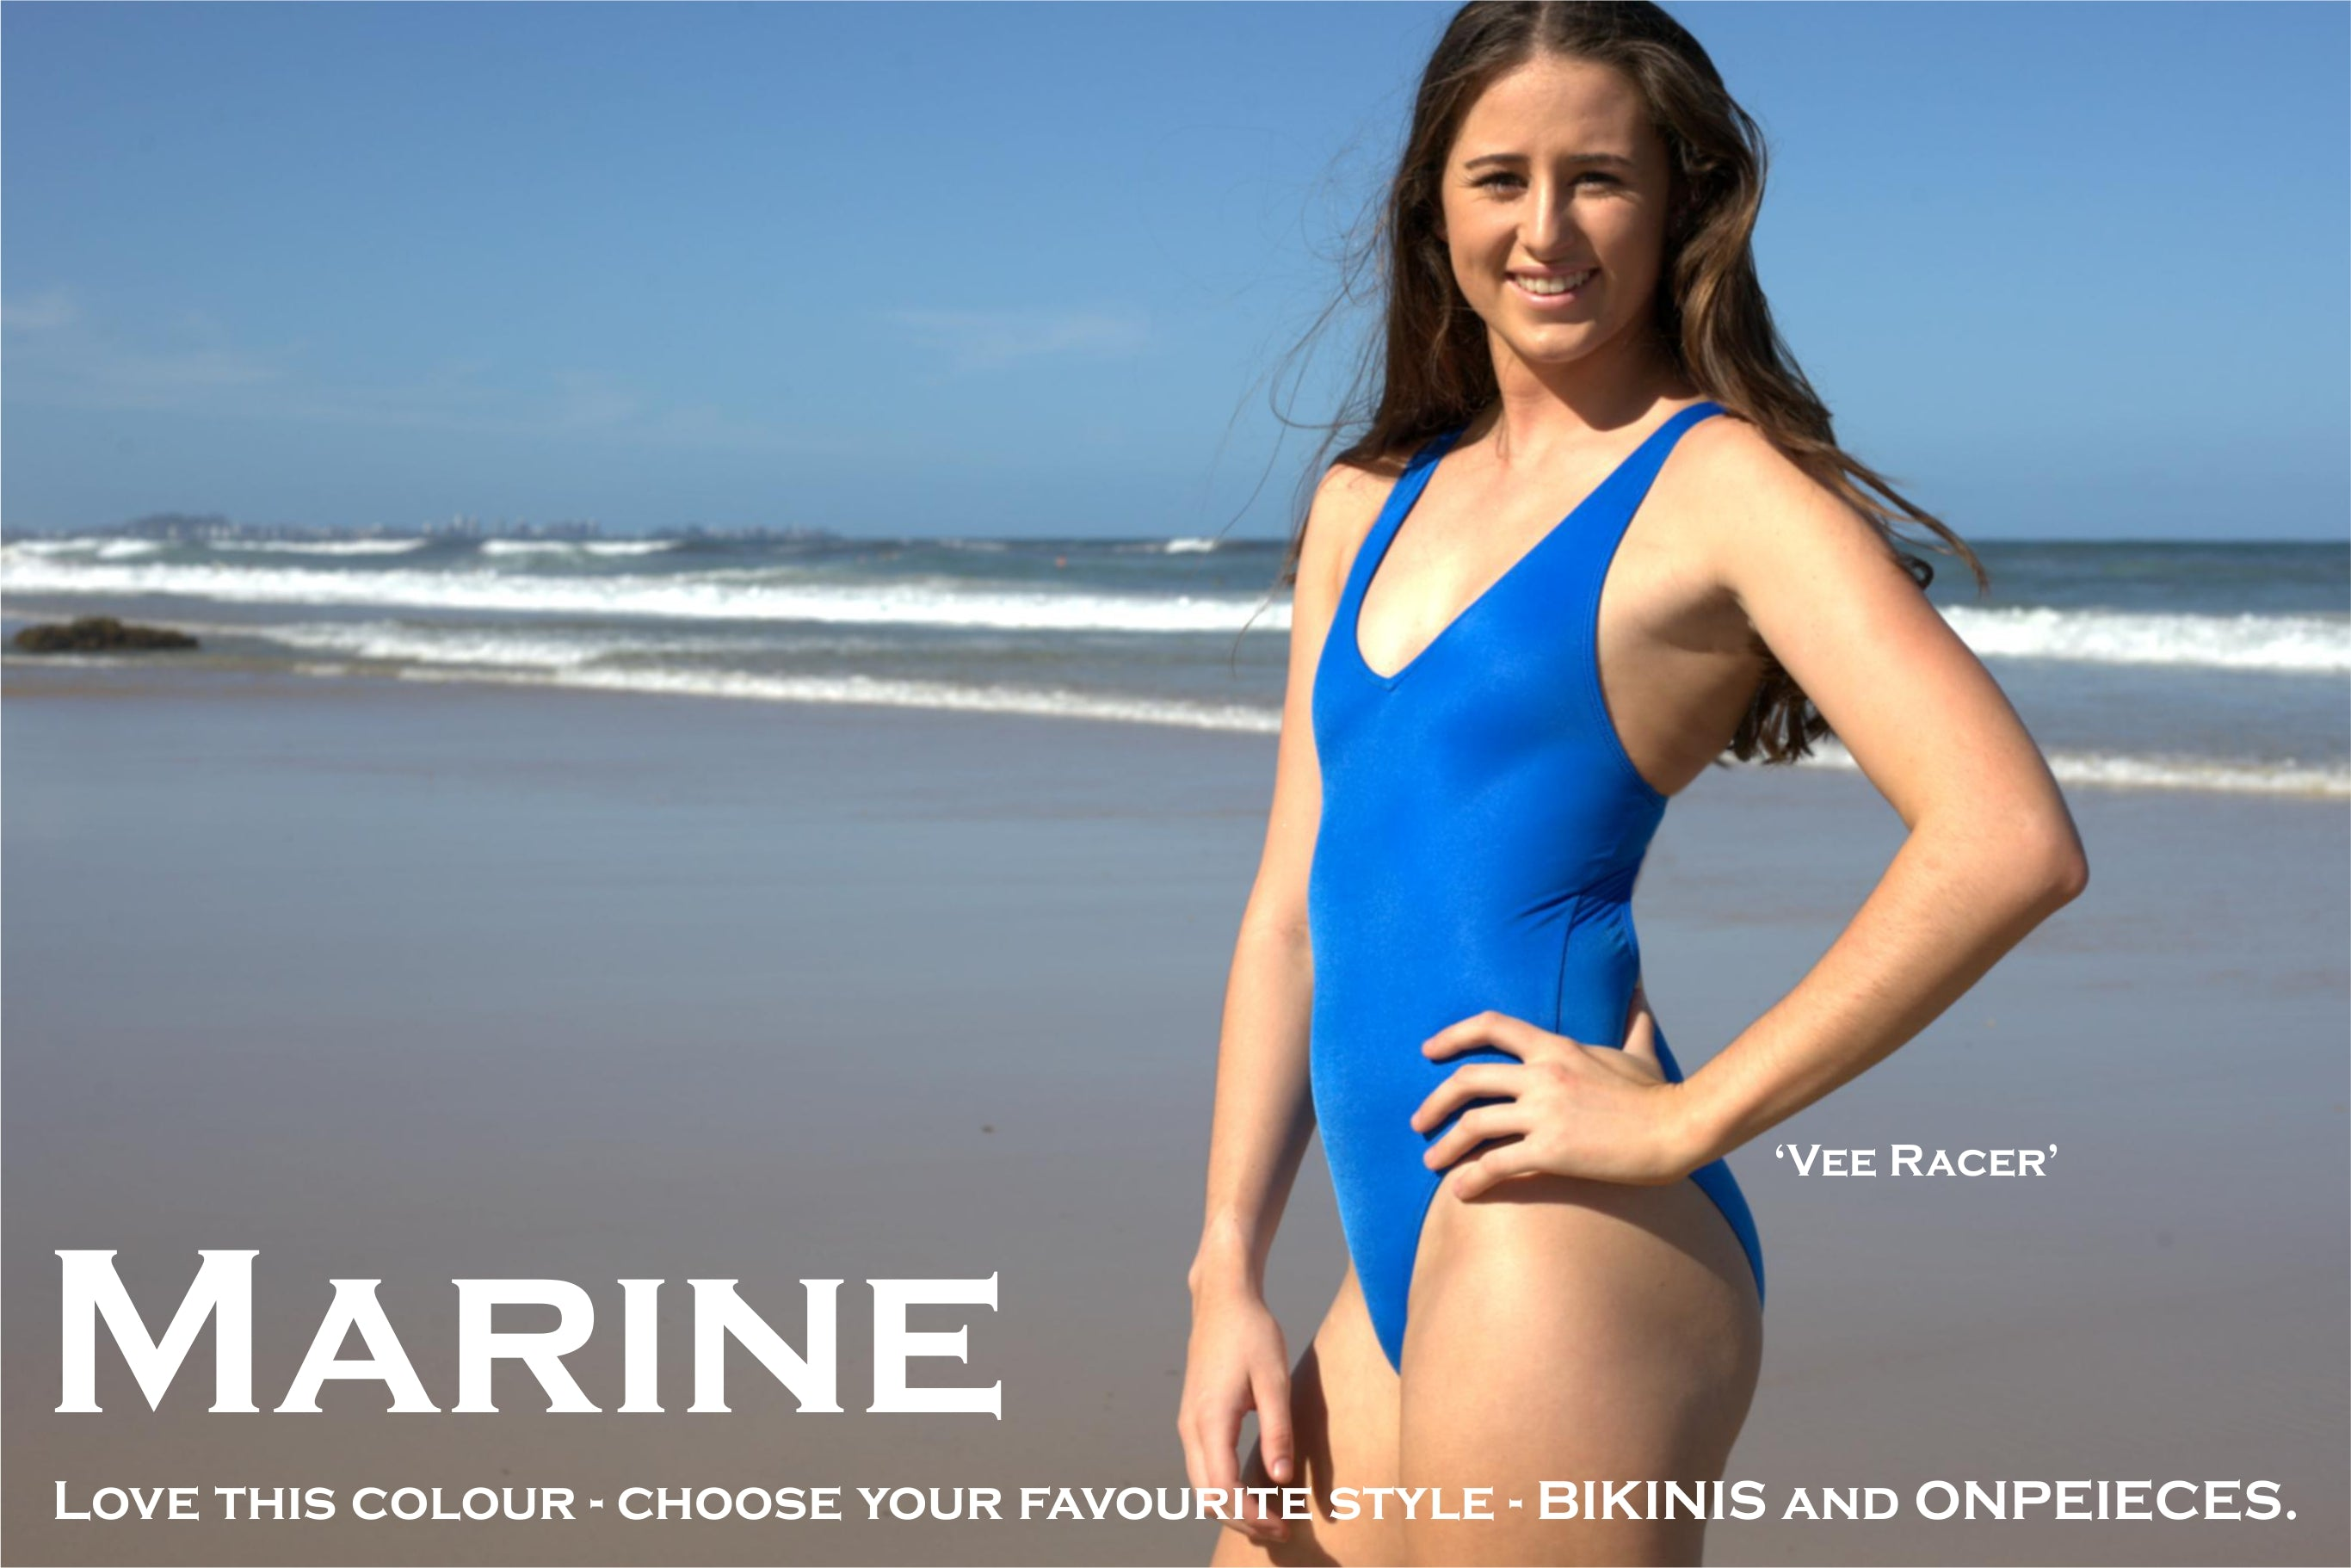 NEW! - Marine  - all styles in BIKINIS and ONEPIECES